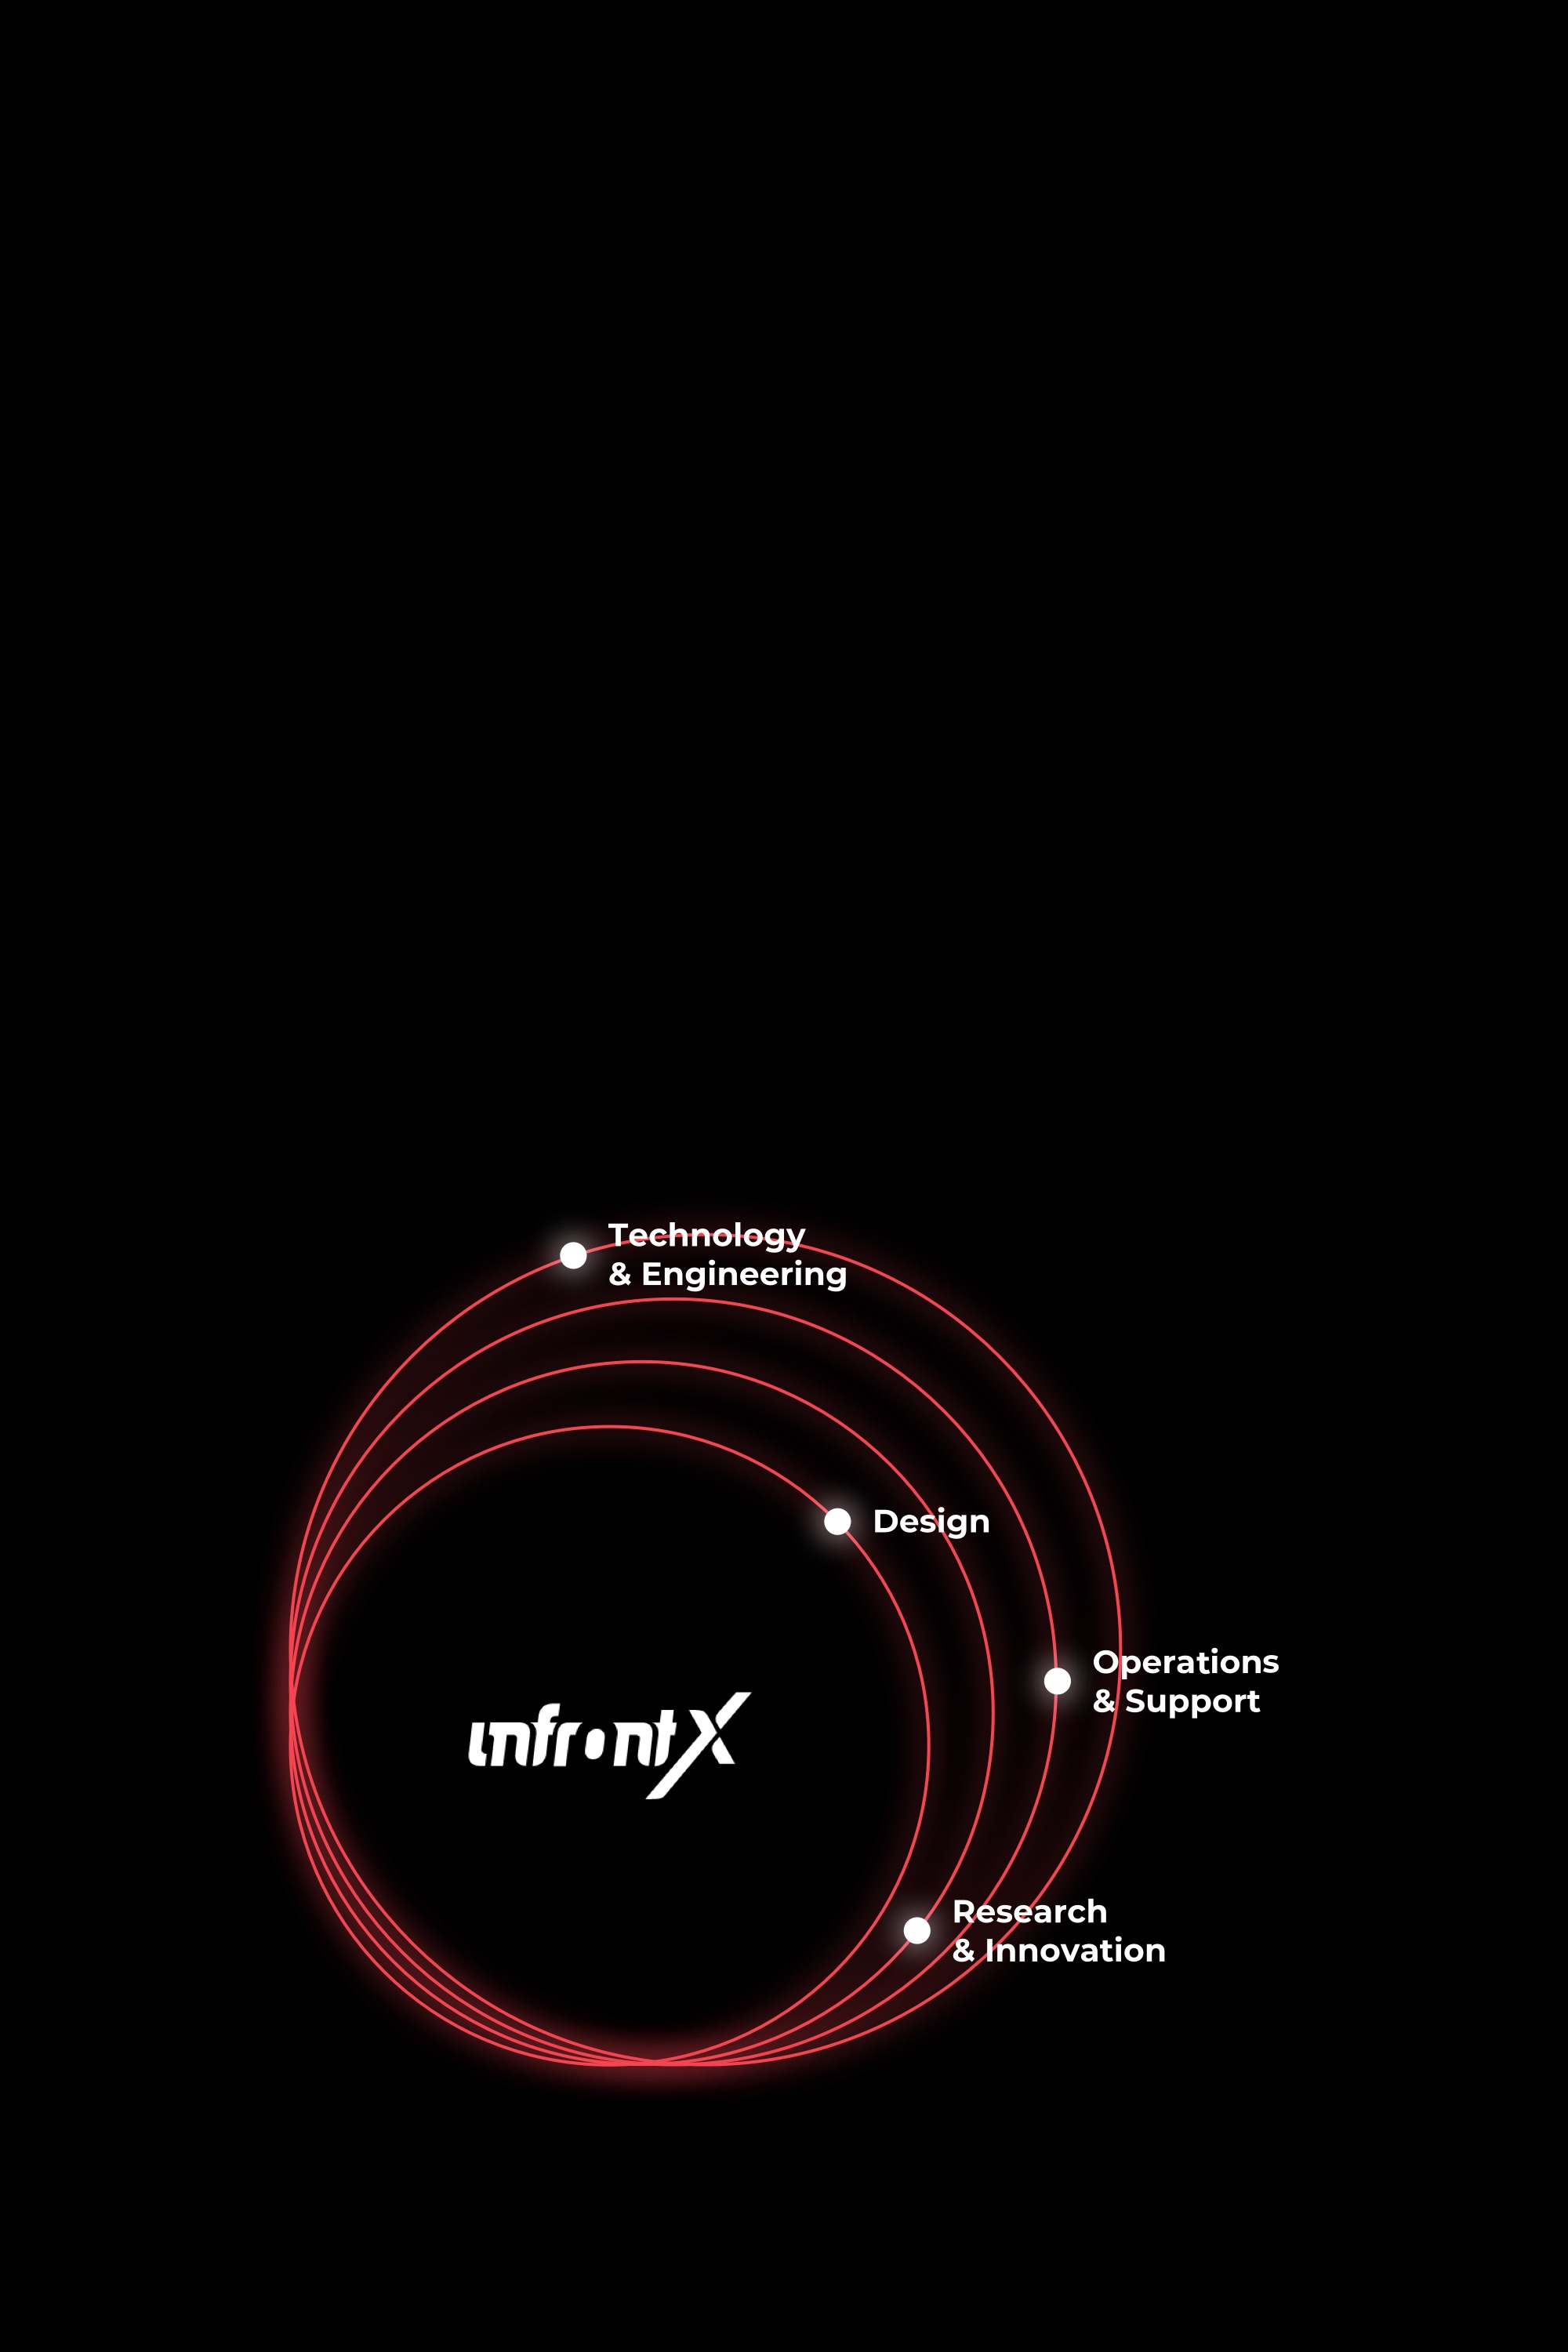 Infront X logo in the middle of diagram with Strategy, Innovation, Support, Technology, Design